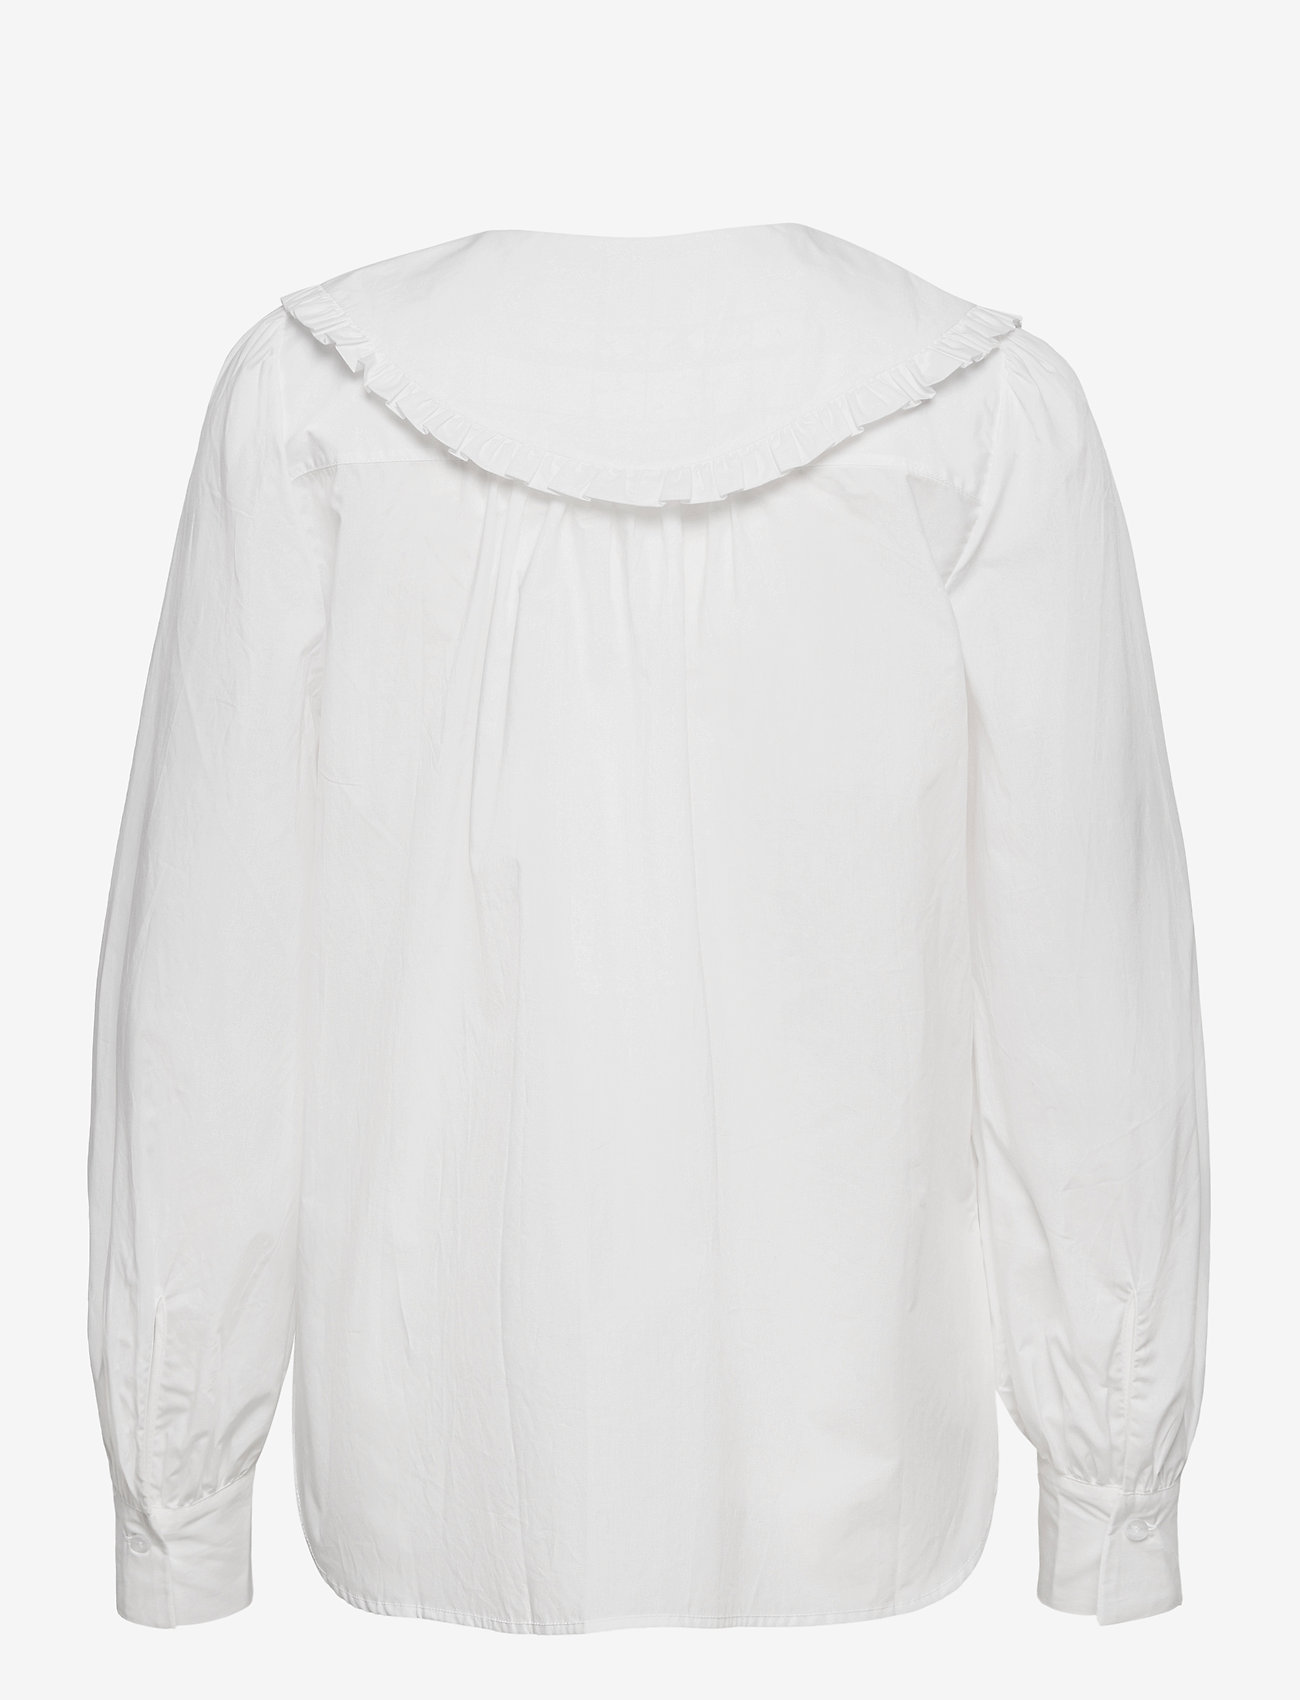 This 100% Cotton Shirt Has An Unique OversizedFrilled Coll (White) (95 €) - Second Female ZlO1e